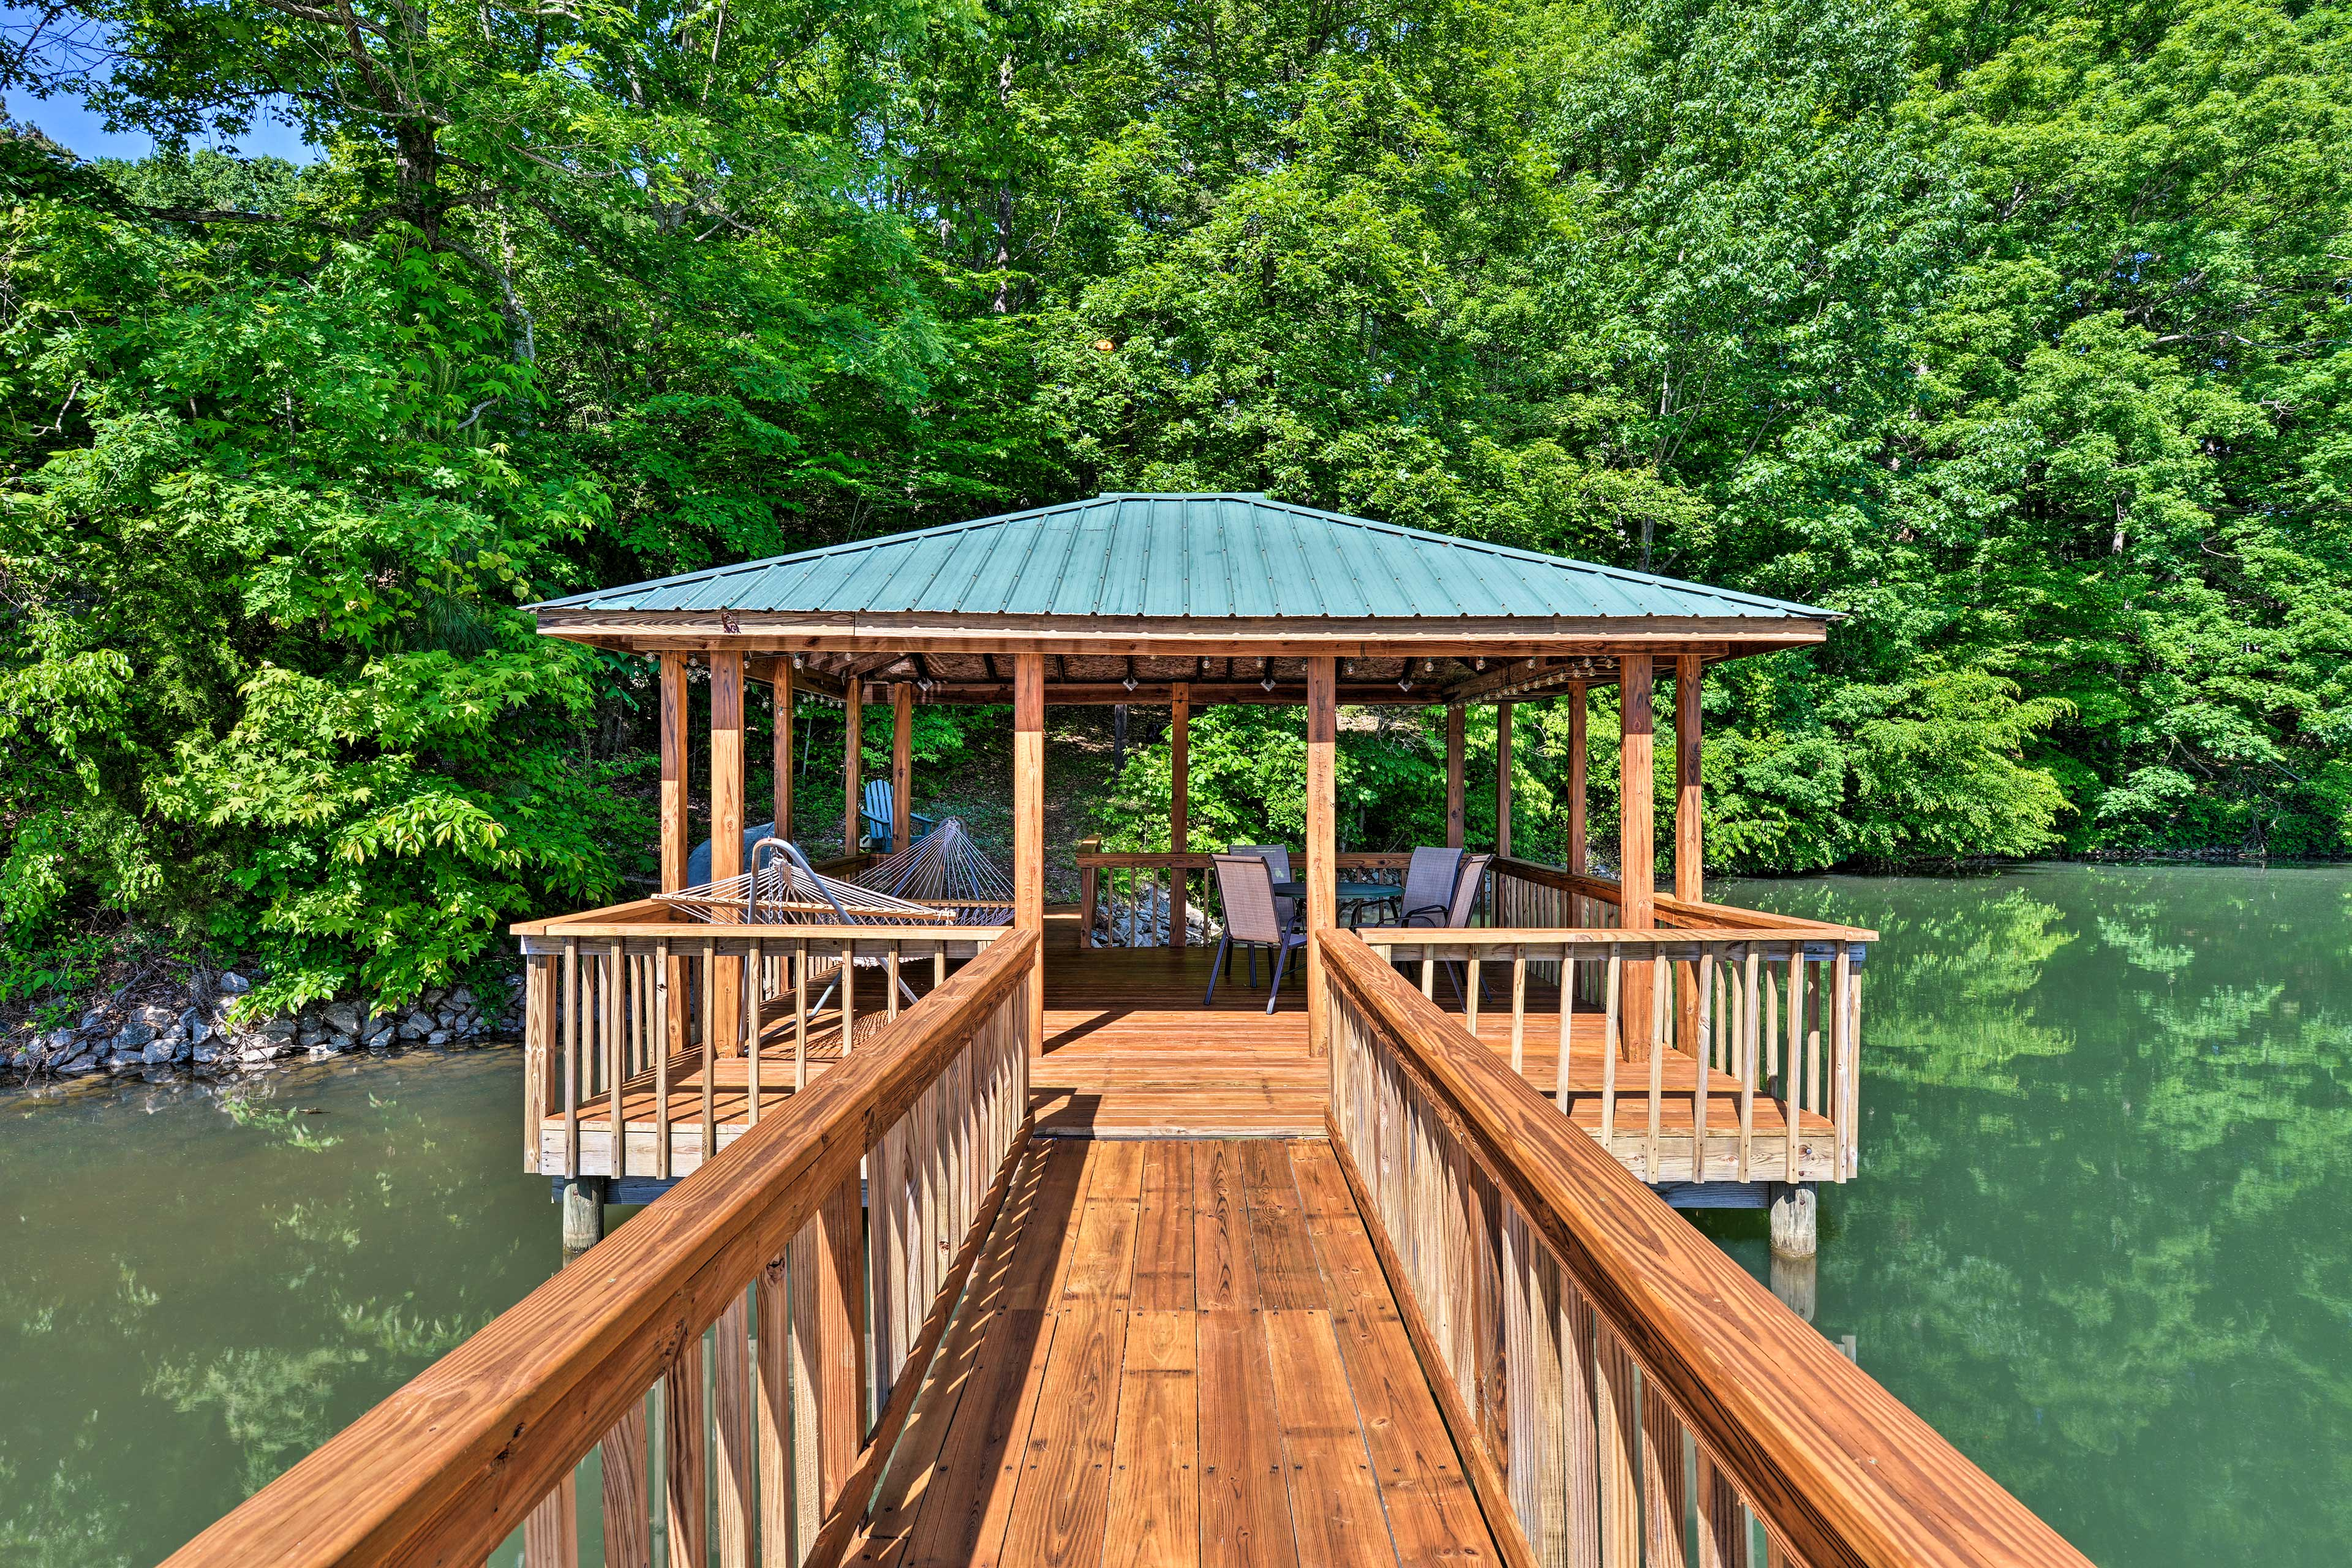 The covered portion of the dock has lights, a hammock, and a dining area.